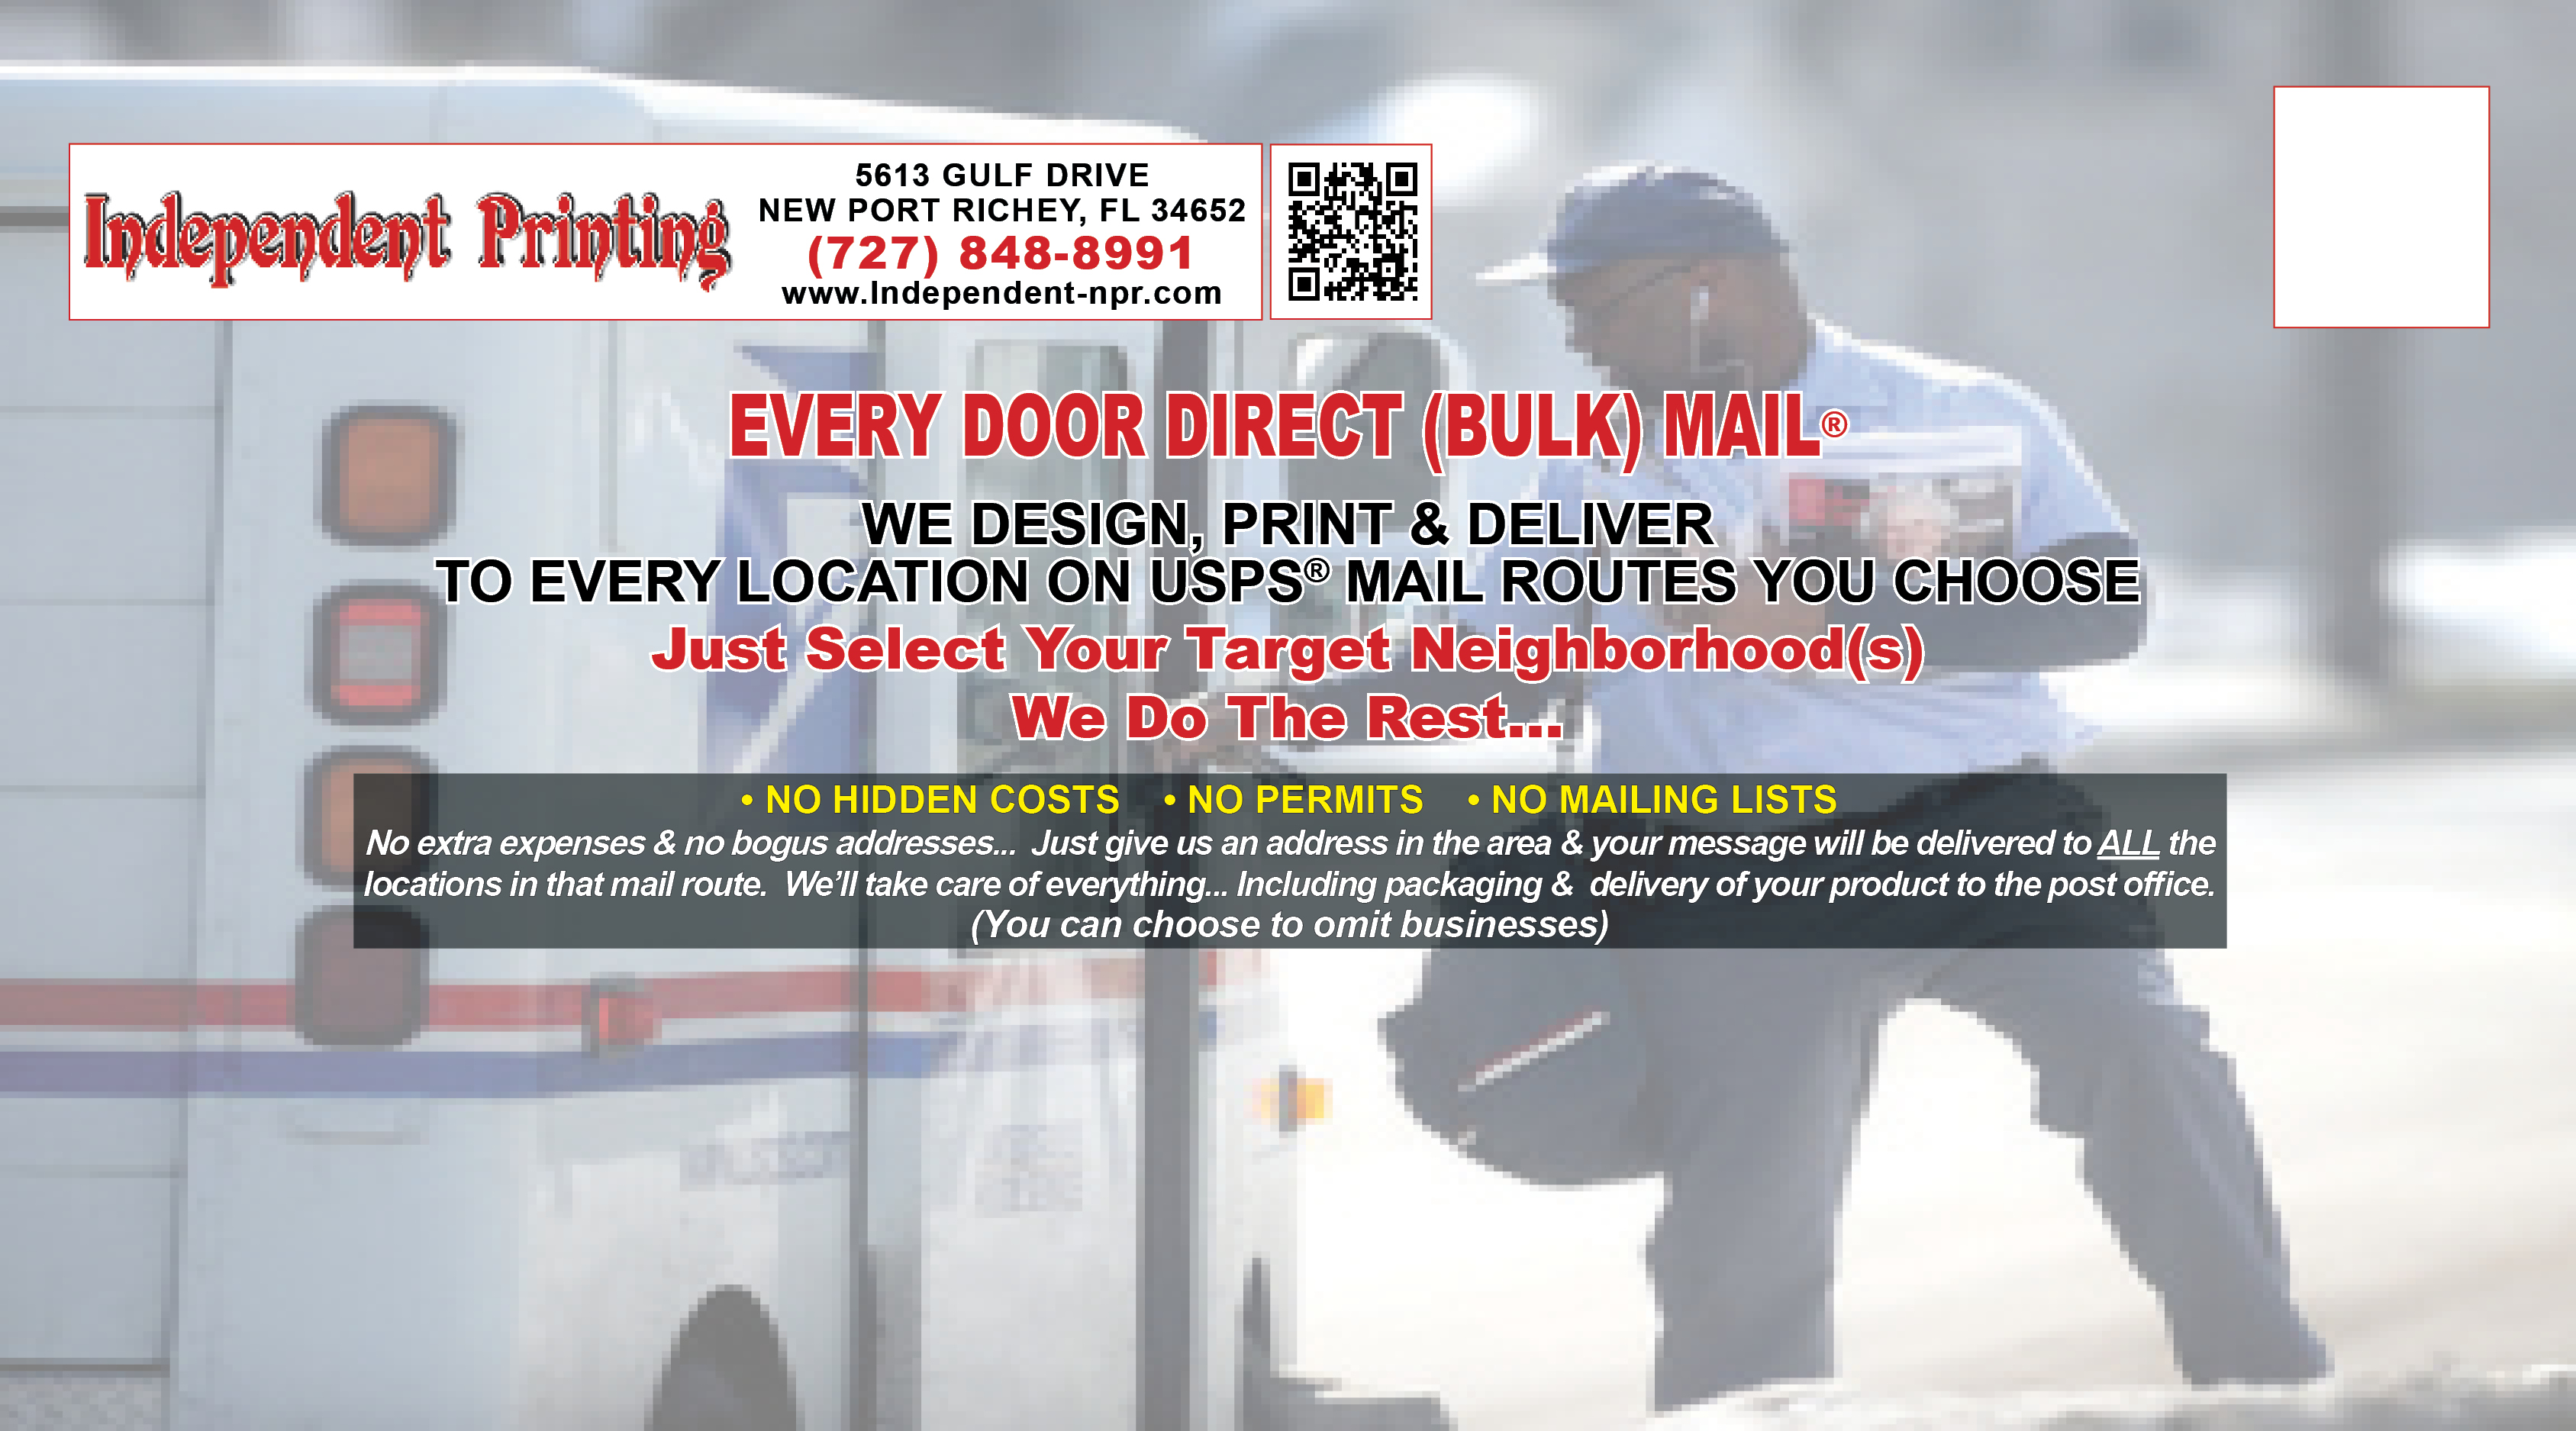 usps every door direct mail template - every door direct mail usps eddm independent printing